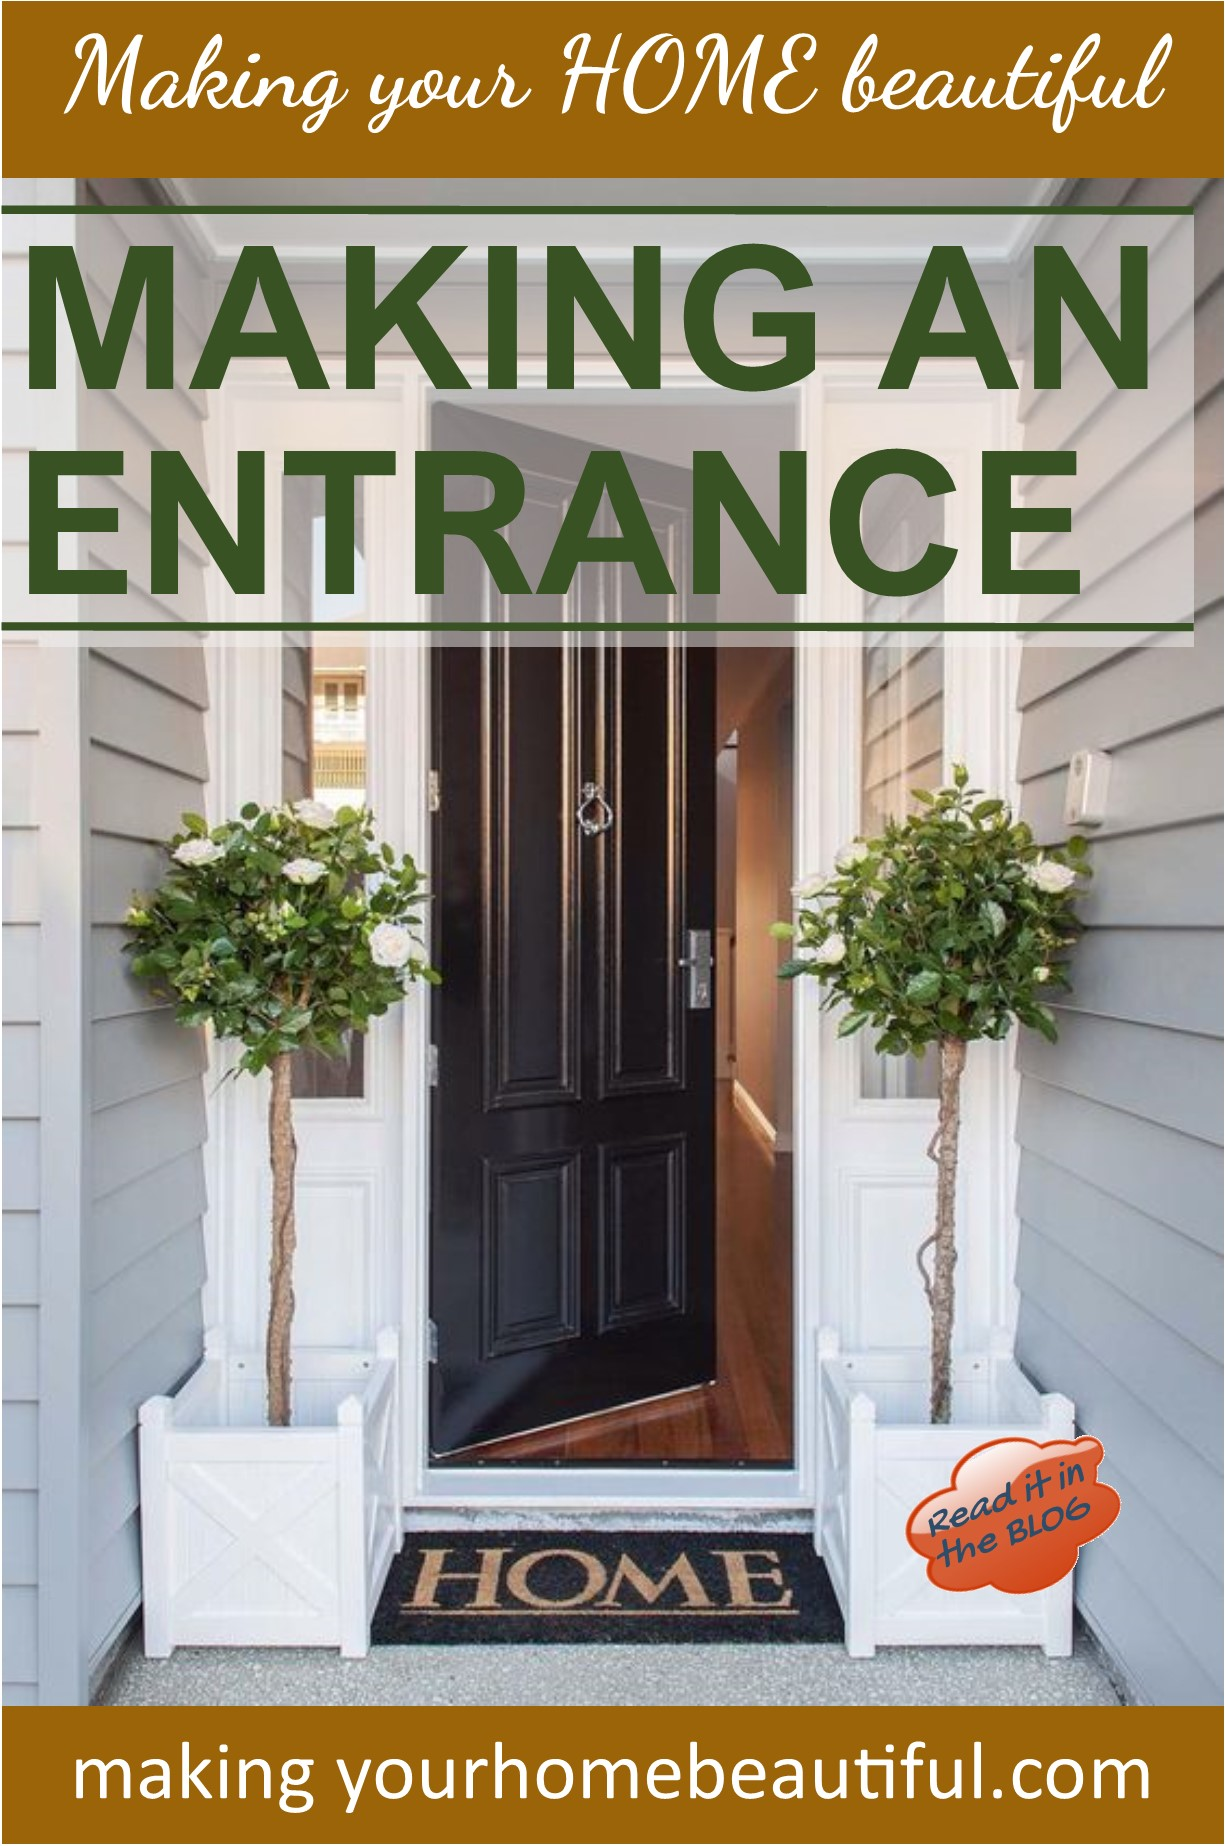 Making an Entrance - 7 tips to follow